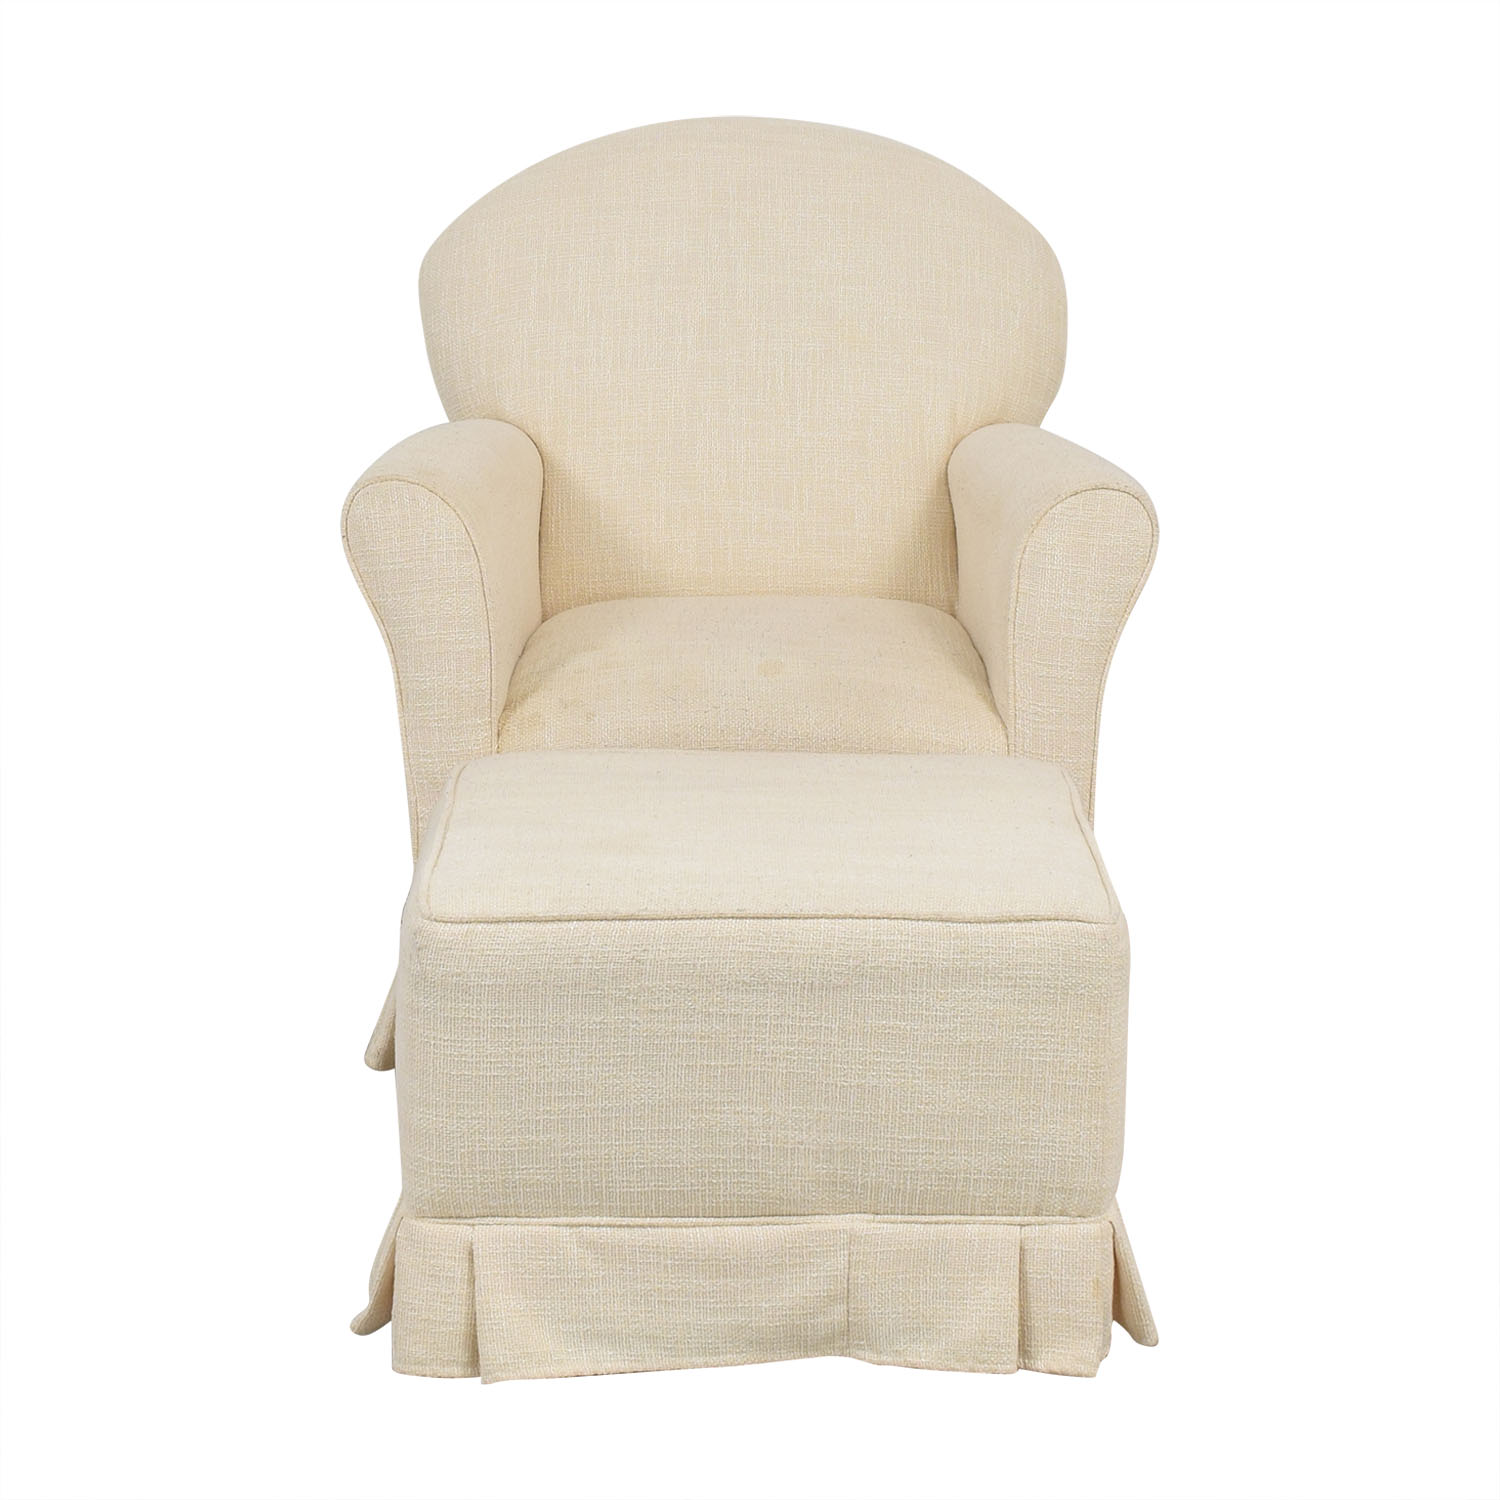 shop Little Castle Furniture Glider Chair and Ottoman Little Castle Furniture Chairs